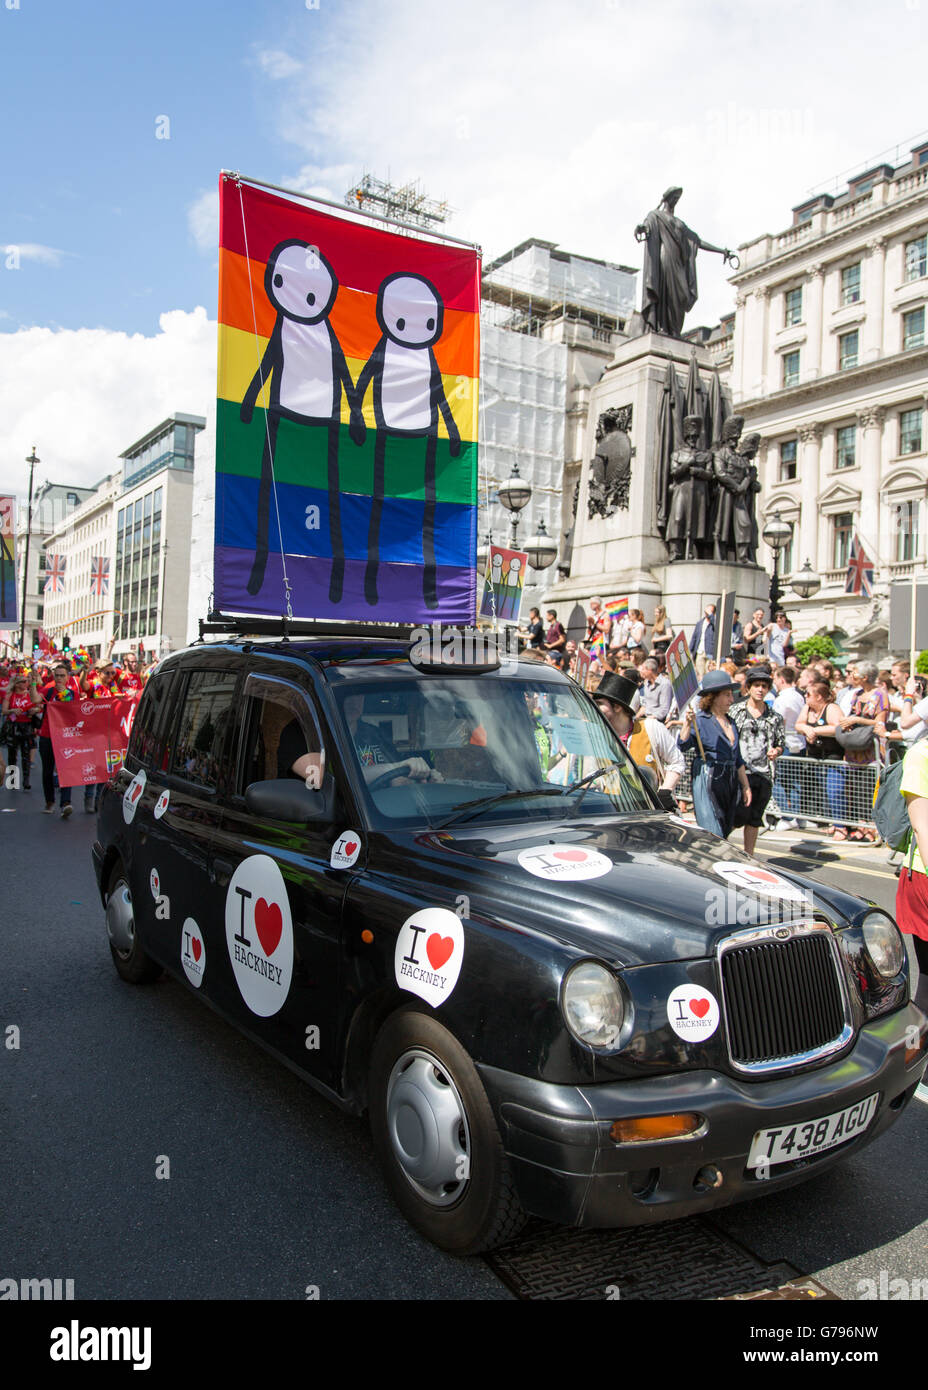 London, UK  25th June, 2016. Pride in London parade. Banner by Stik London on hackney cab or black cab in Hackney - Stock Image